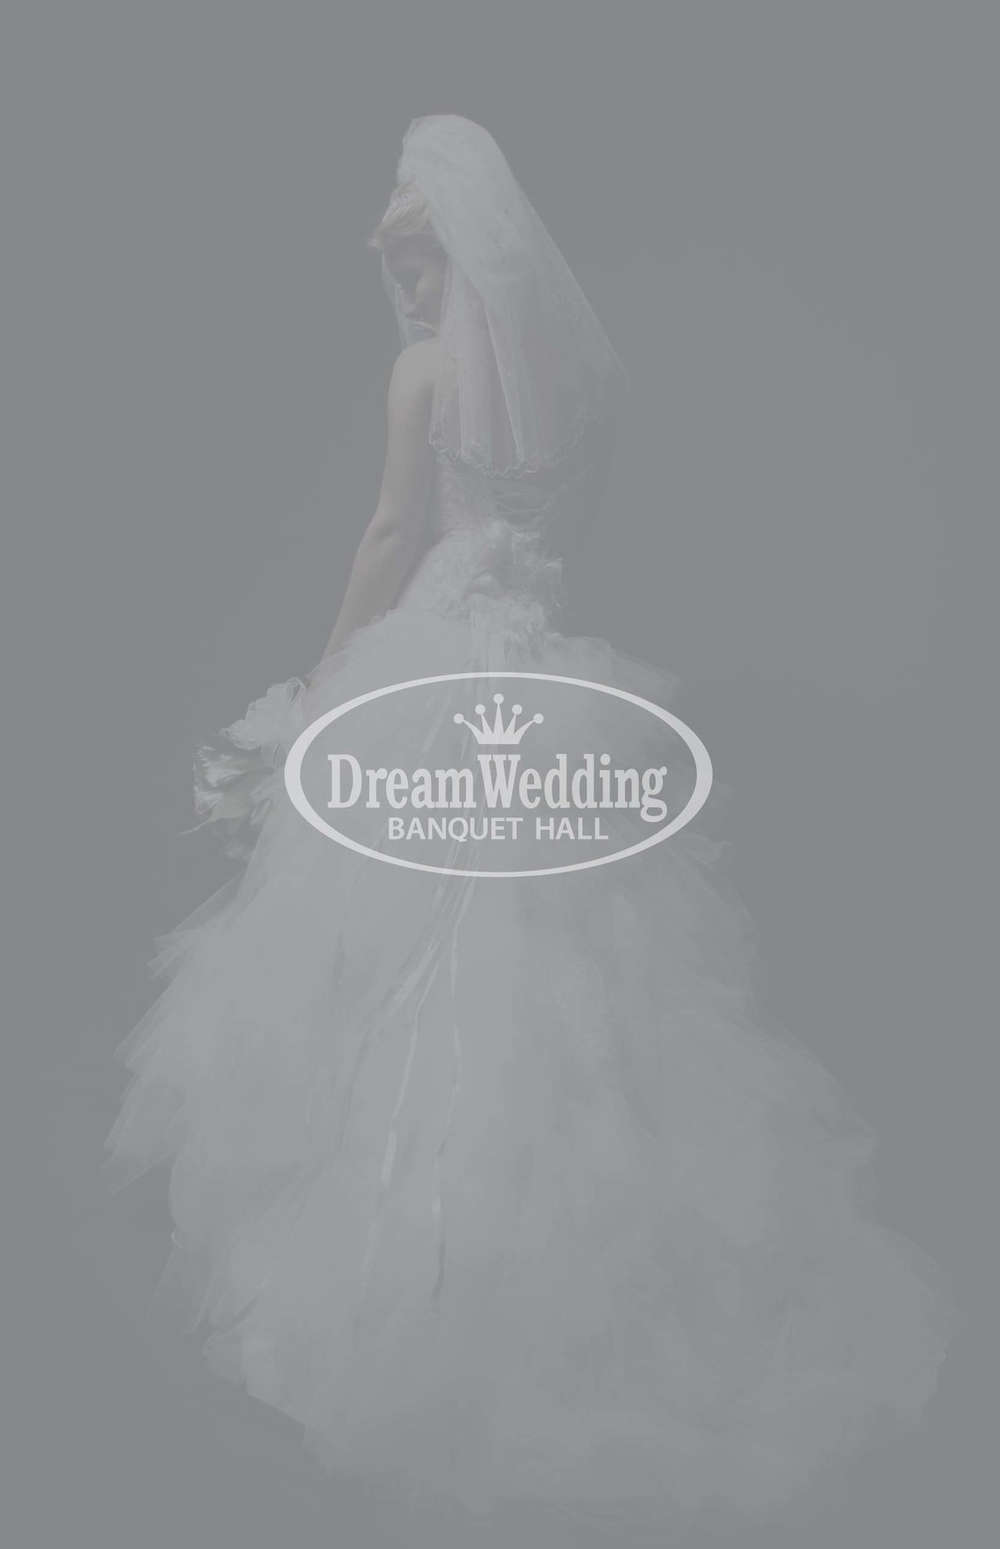 dream_wedding-020111-1.jpg